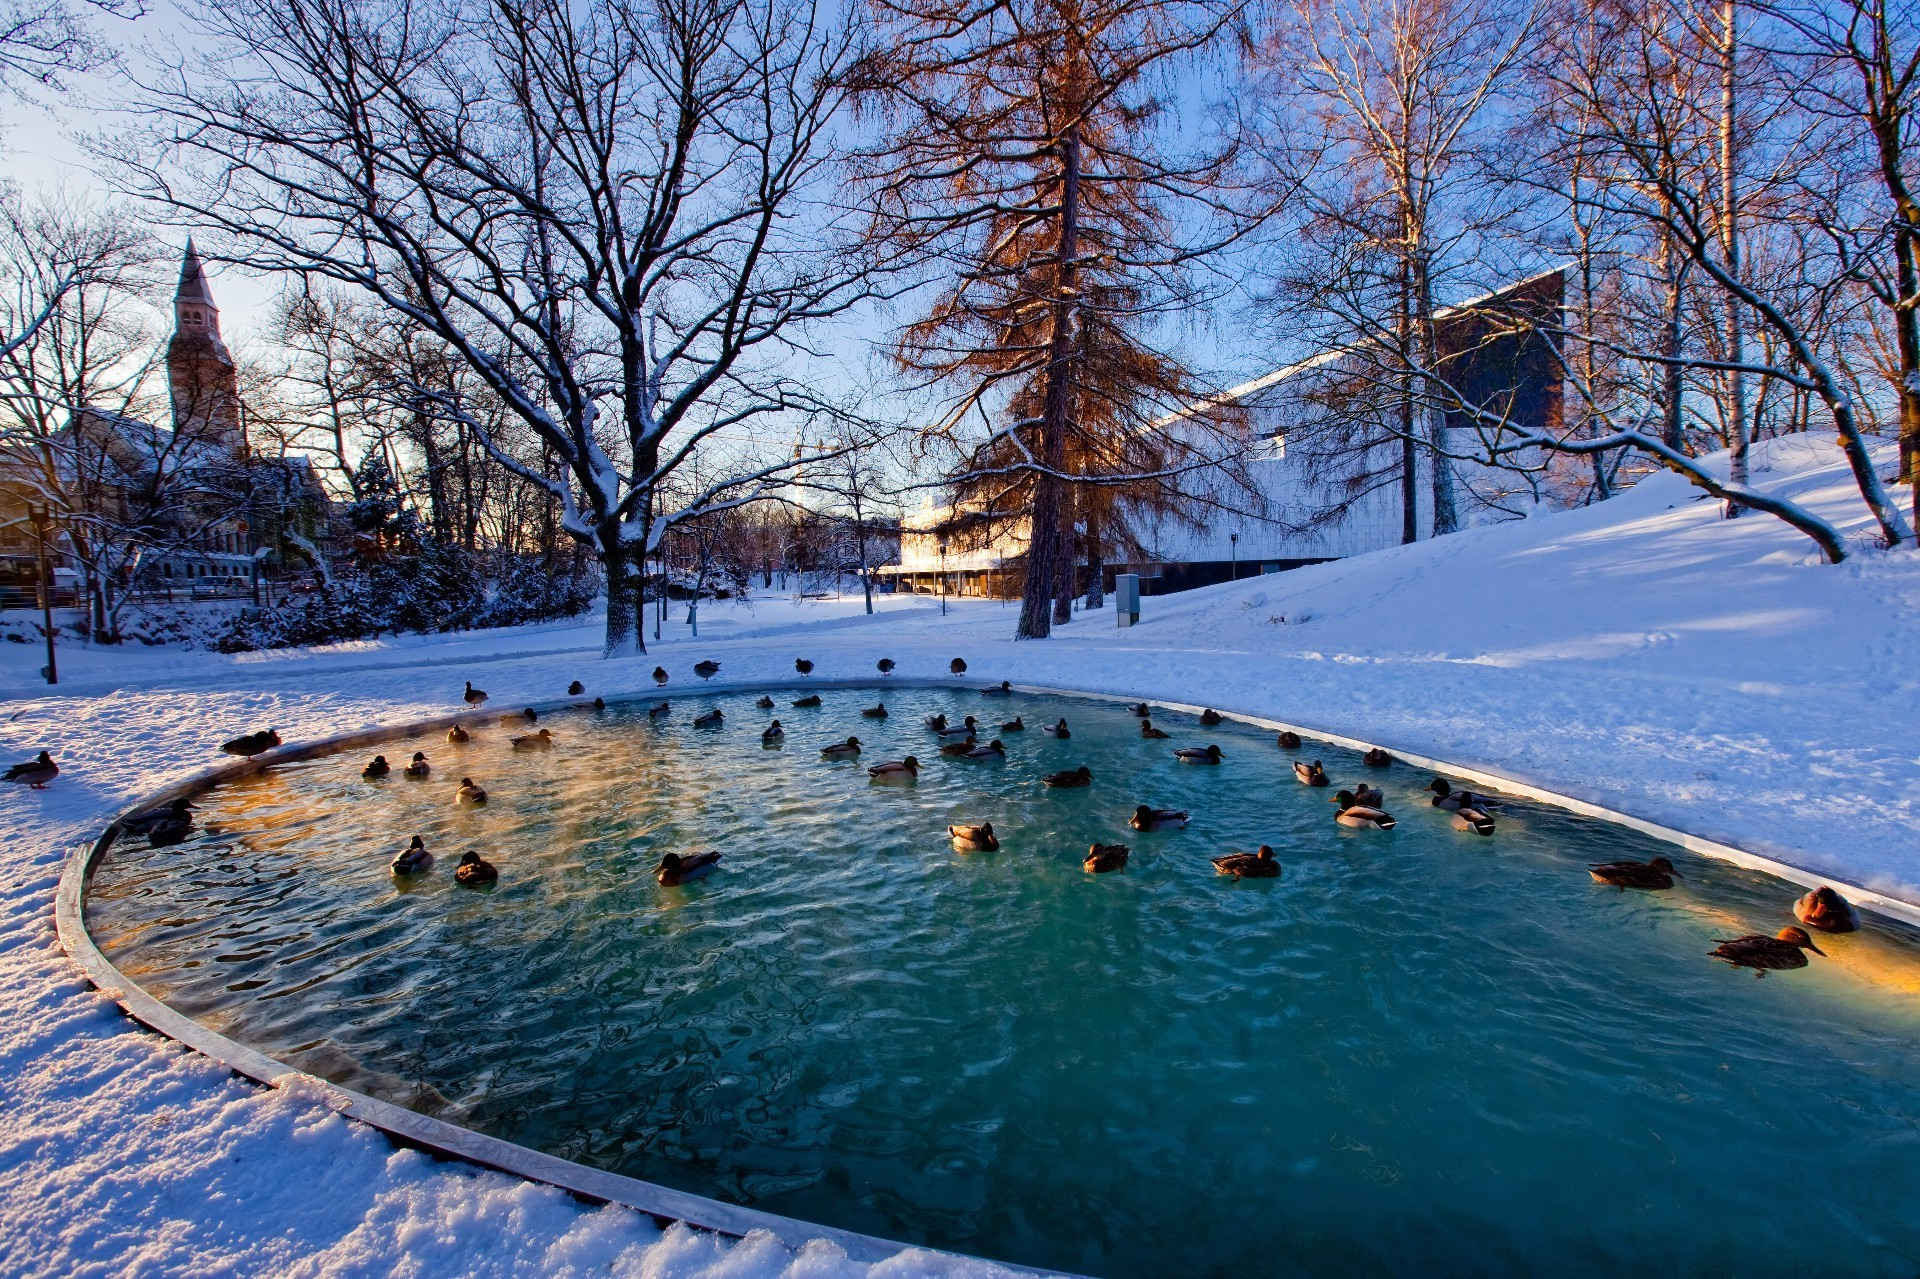 Ducks in an artificial pond in winter